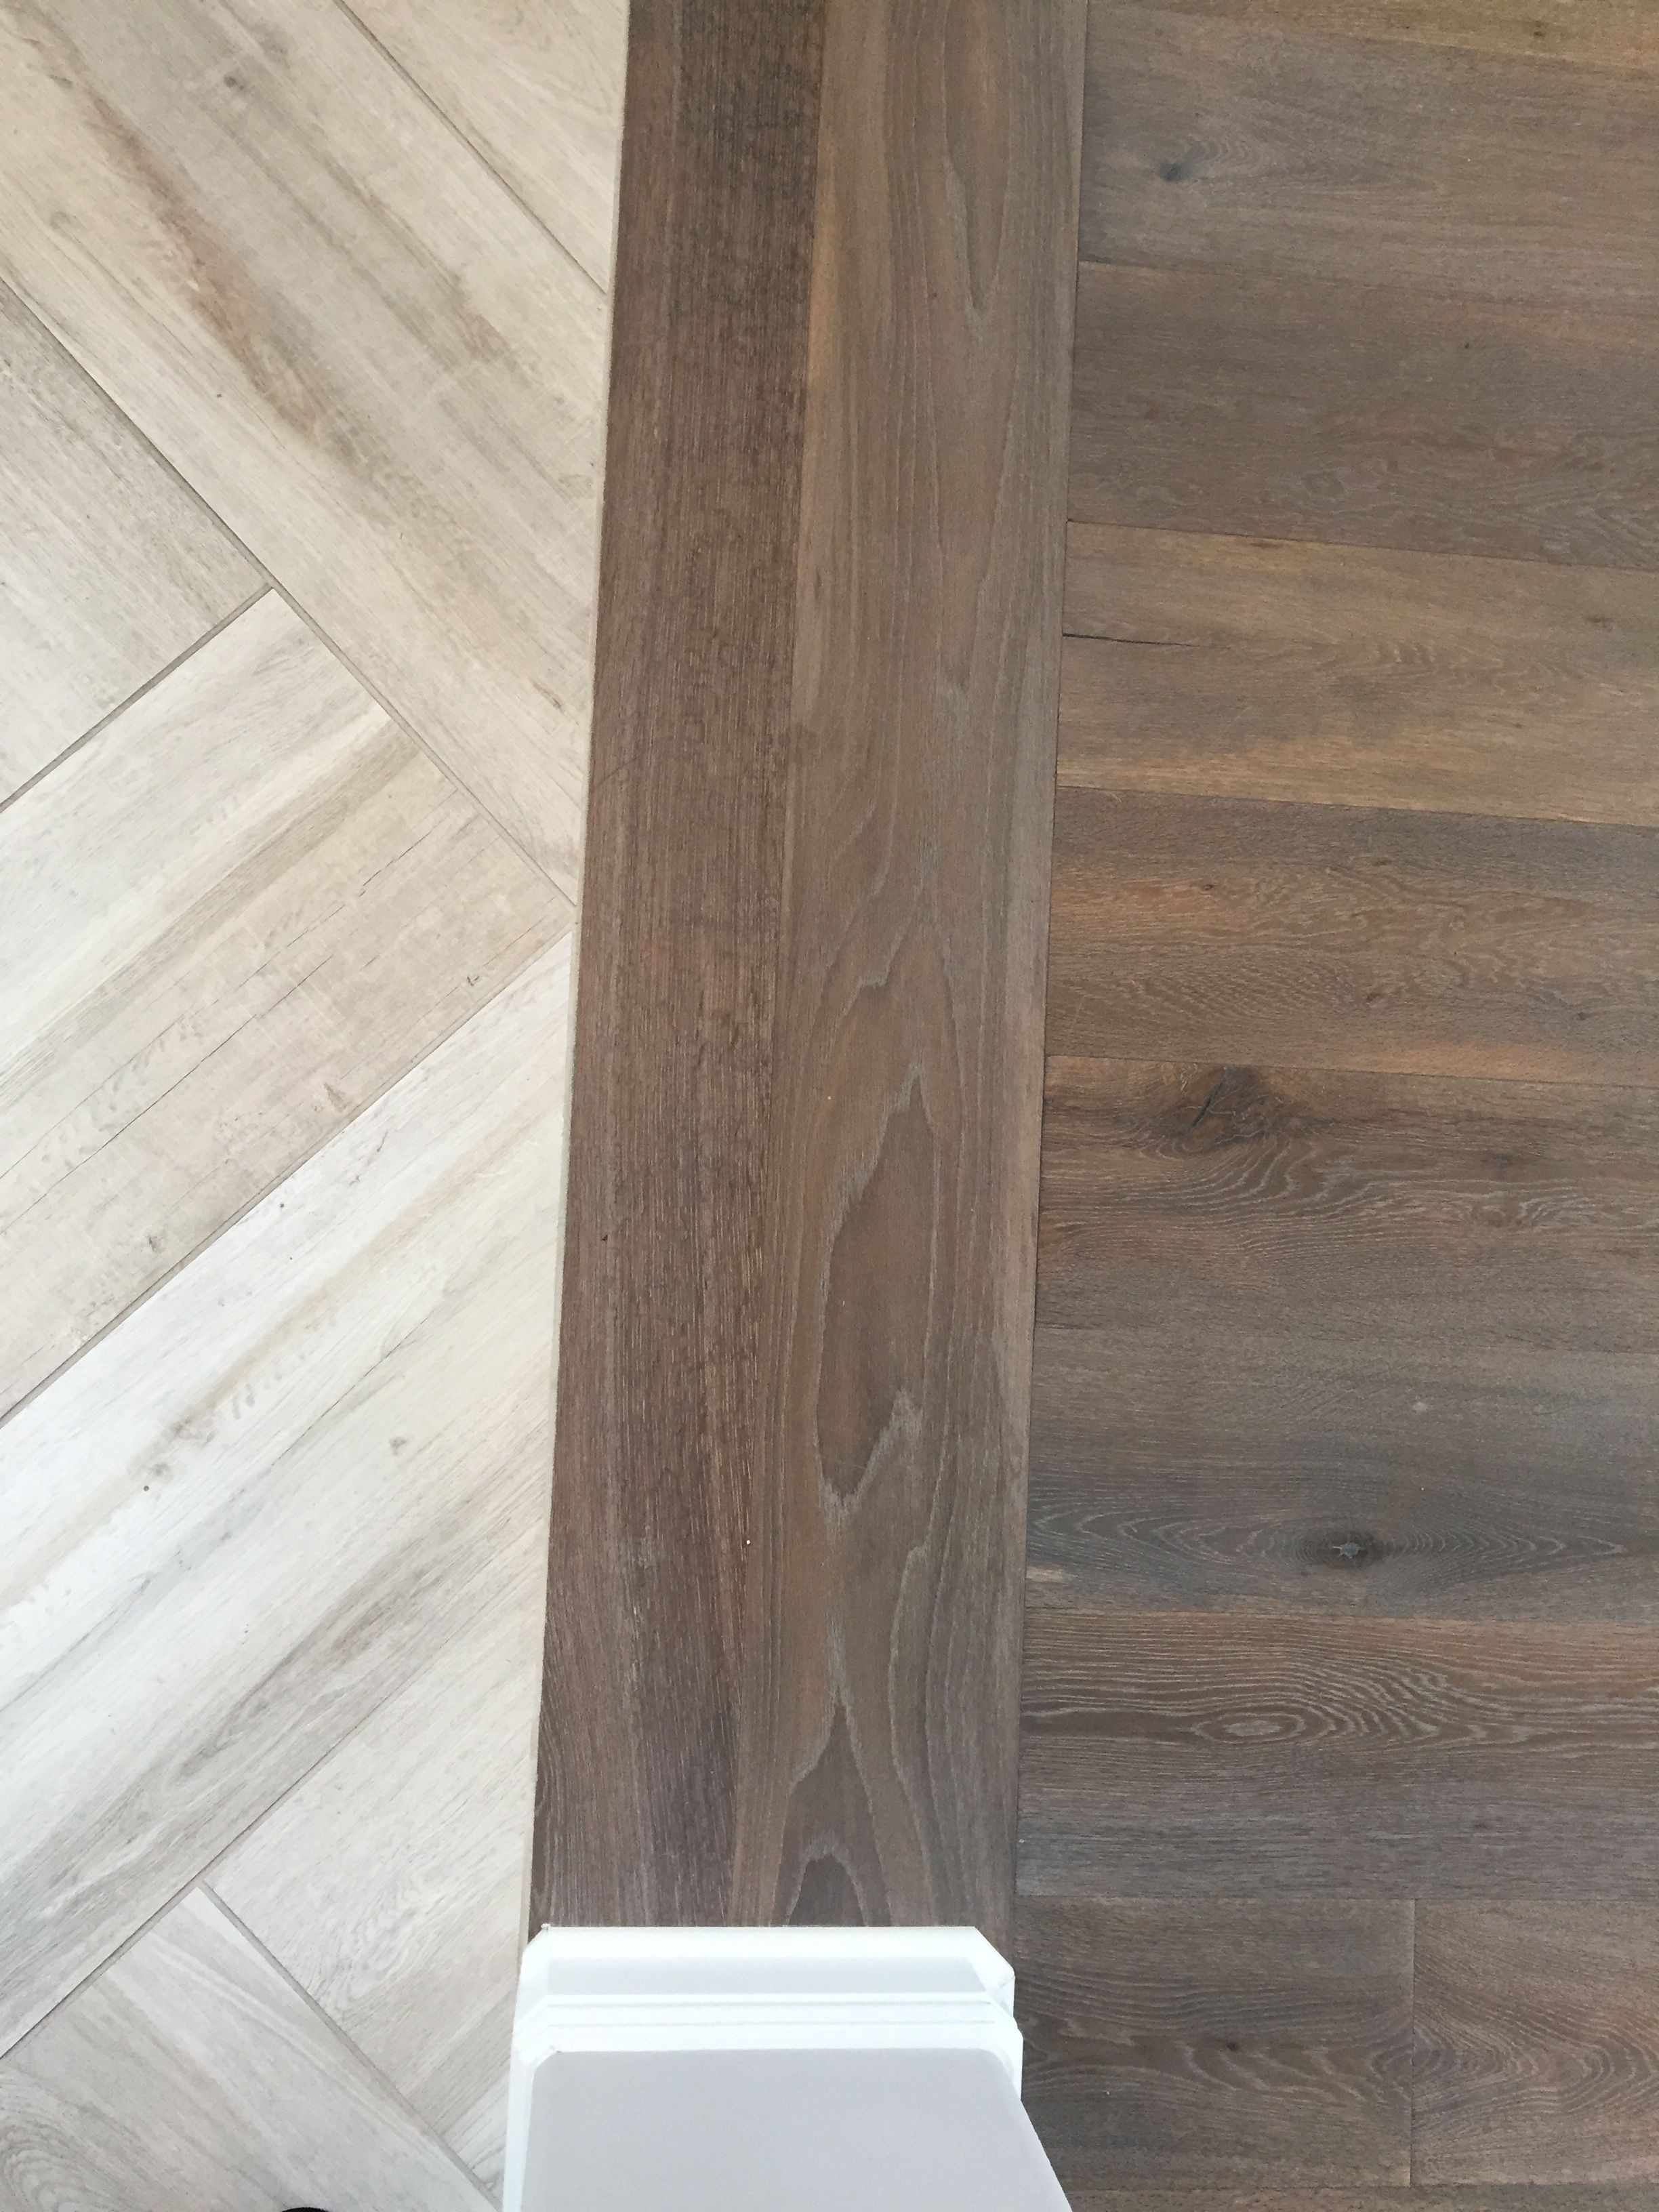 Best Product to Clean Engineered Hardwood Floors Of Floor Transition Laminate to Herringbone Tile Pattern Model Intended for Floor Transition Laminate to Herringbone Tile Pattern Herringbone Tile Pattern Herringbone Wood Floor